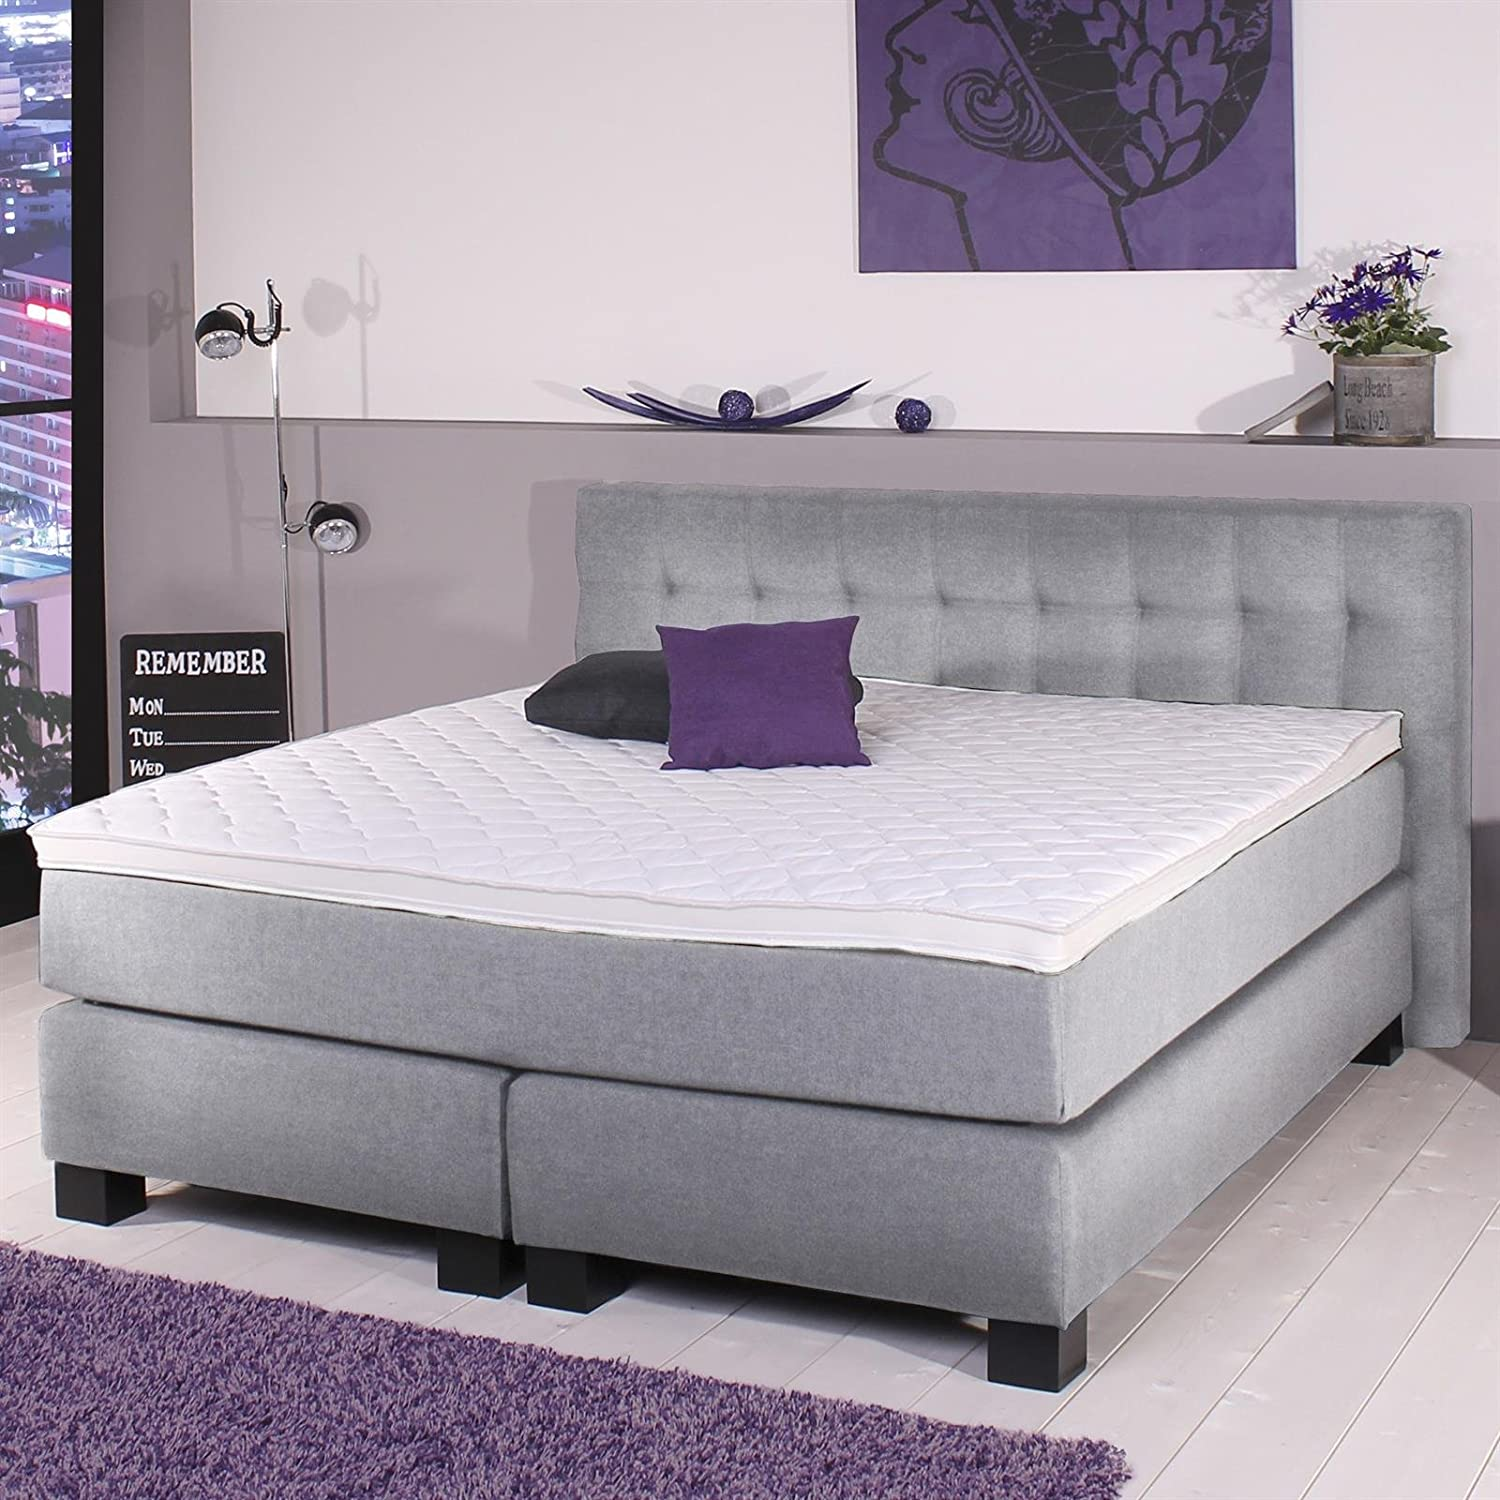 boxspringbett doppelbett hotelbett 180 x 200 cm mit matratze bezug leinen optik silber g nstig. Black Bedroom Furniture Sets. Home Design Ideas